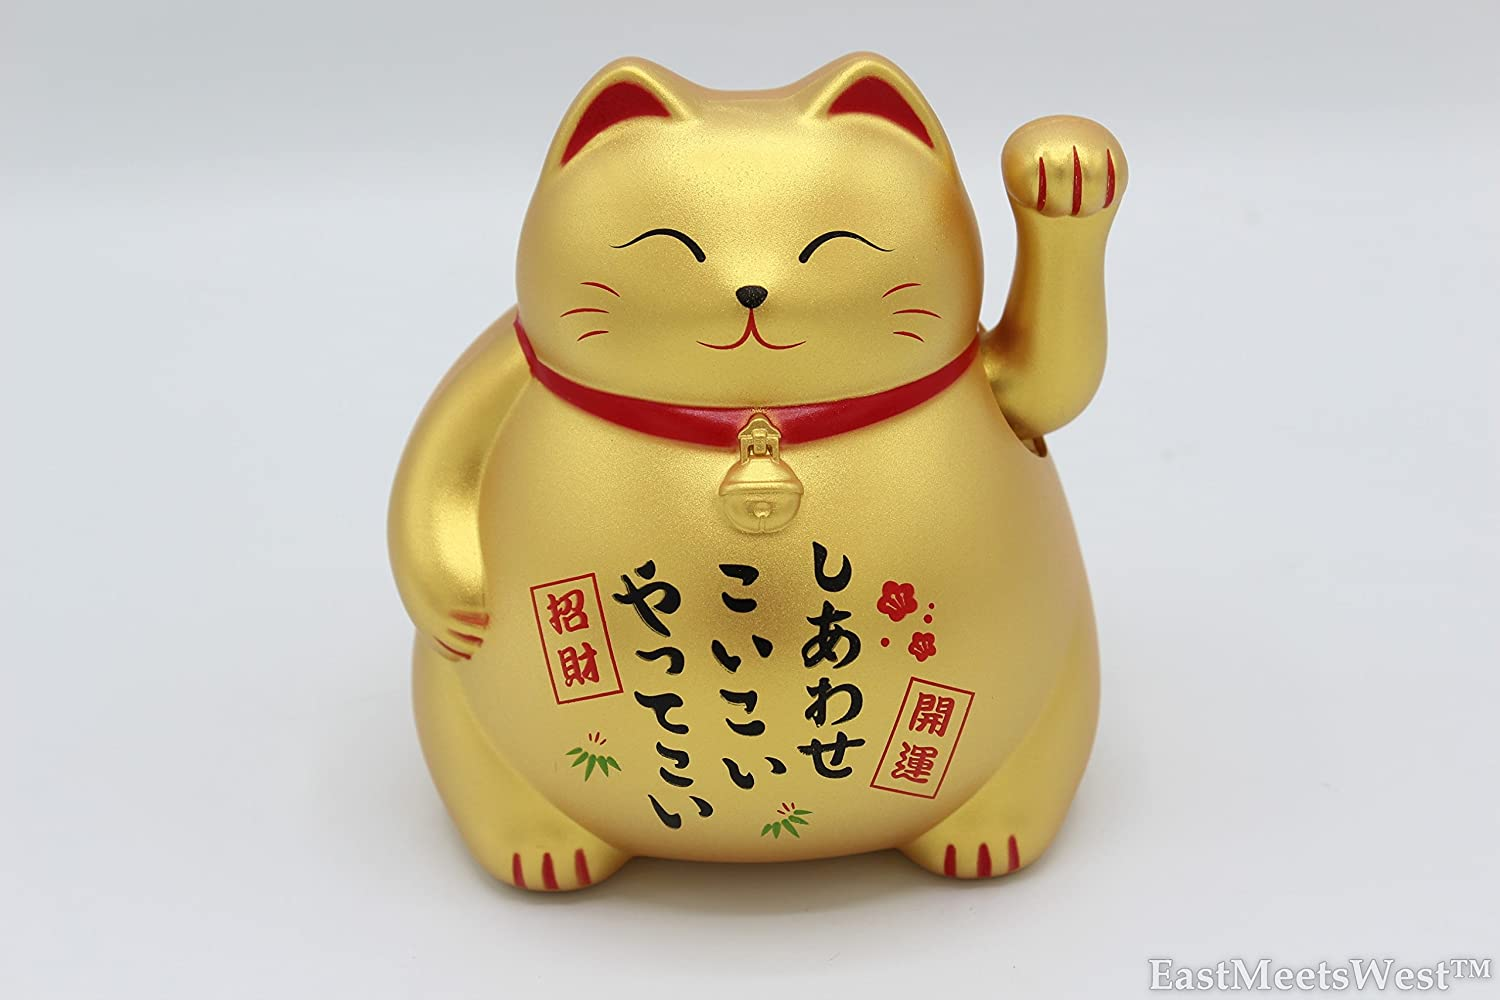 New Edition Japanese Feng Shui Lucky Maneki Neko Waving Paw Beckon Cat Battery Operated (Gold) Beijing